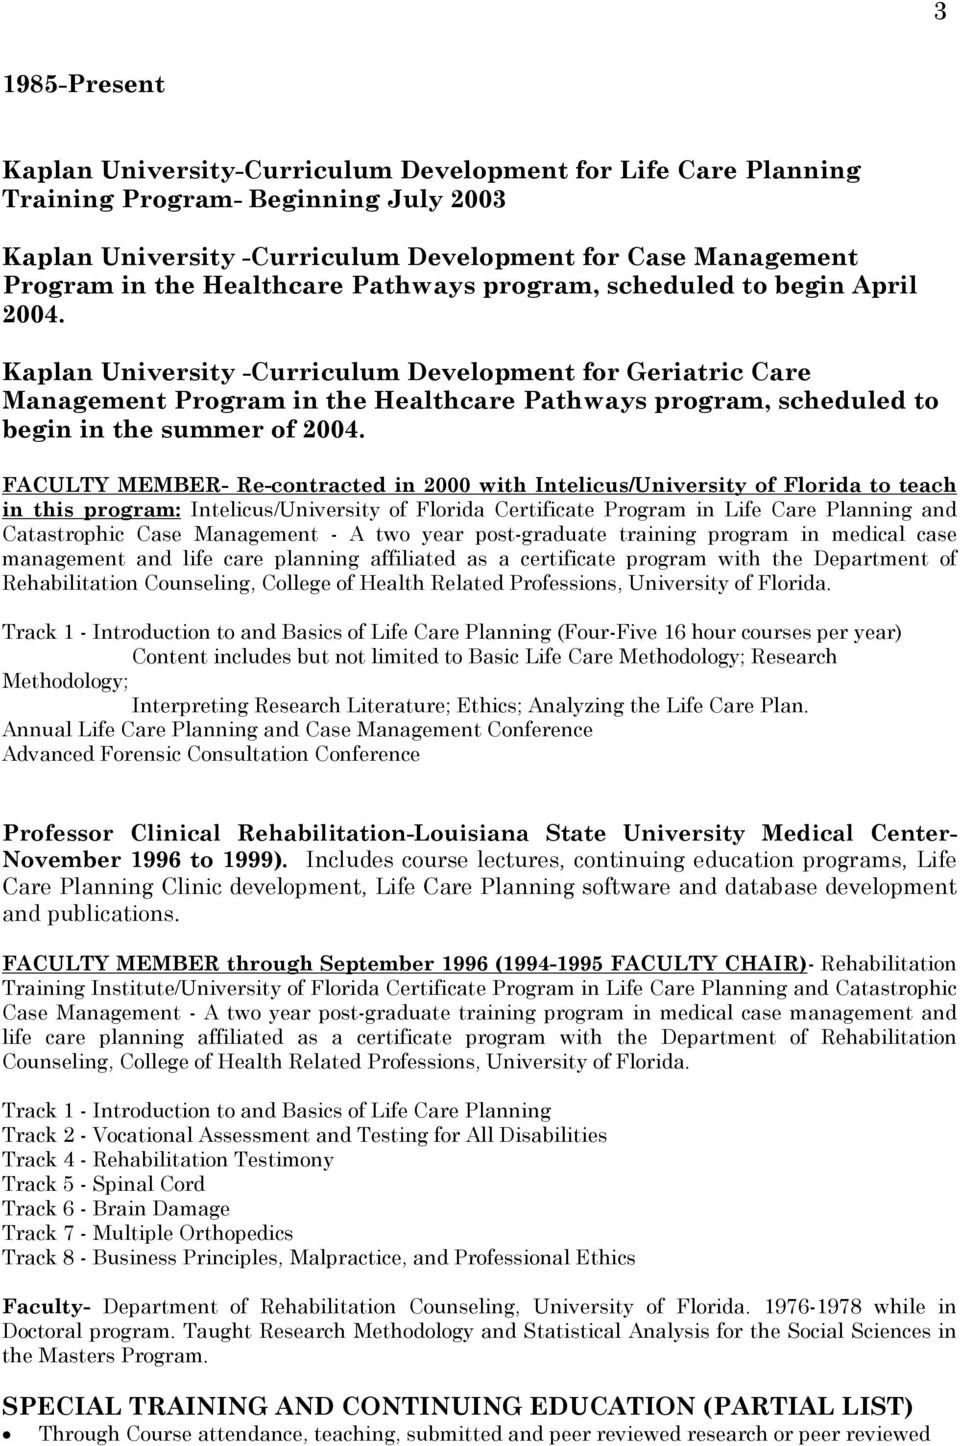 Kaplan University -Curriculum Development for Geriatric Care Management Program in the Healthcare Pathways program, scheduled to begin in the summer of 2004.